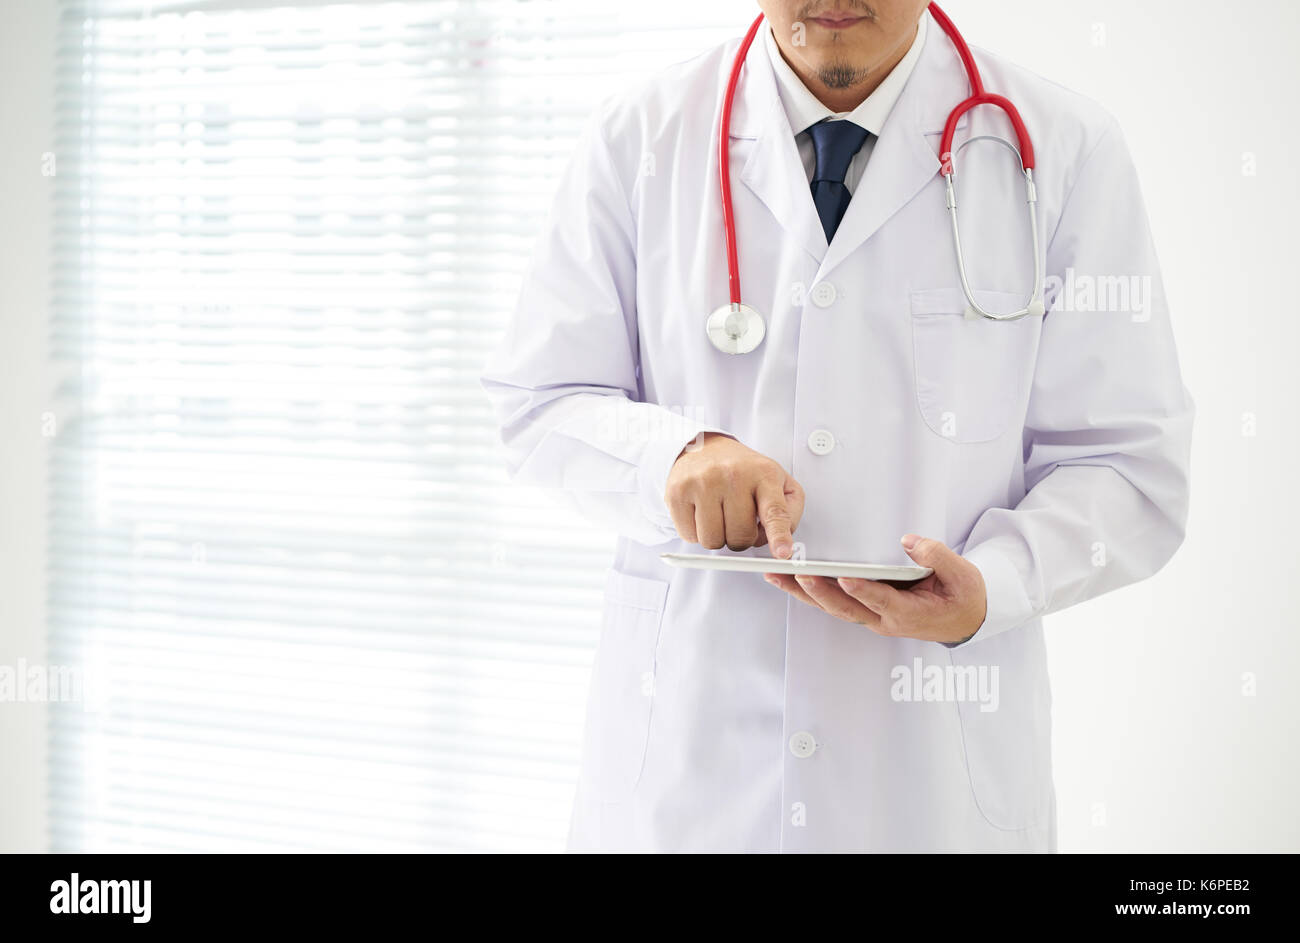 Unknown doctor posing using digital table with bright background, he is wearing a stethoscope . digital table in the office, he is wearing a stethosco - Stock Image